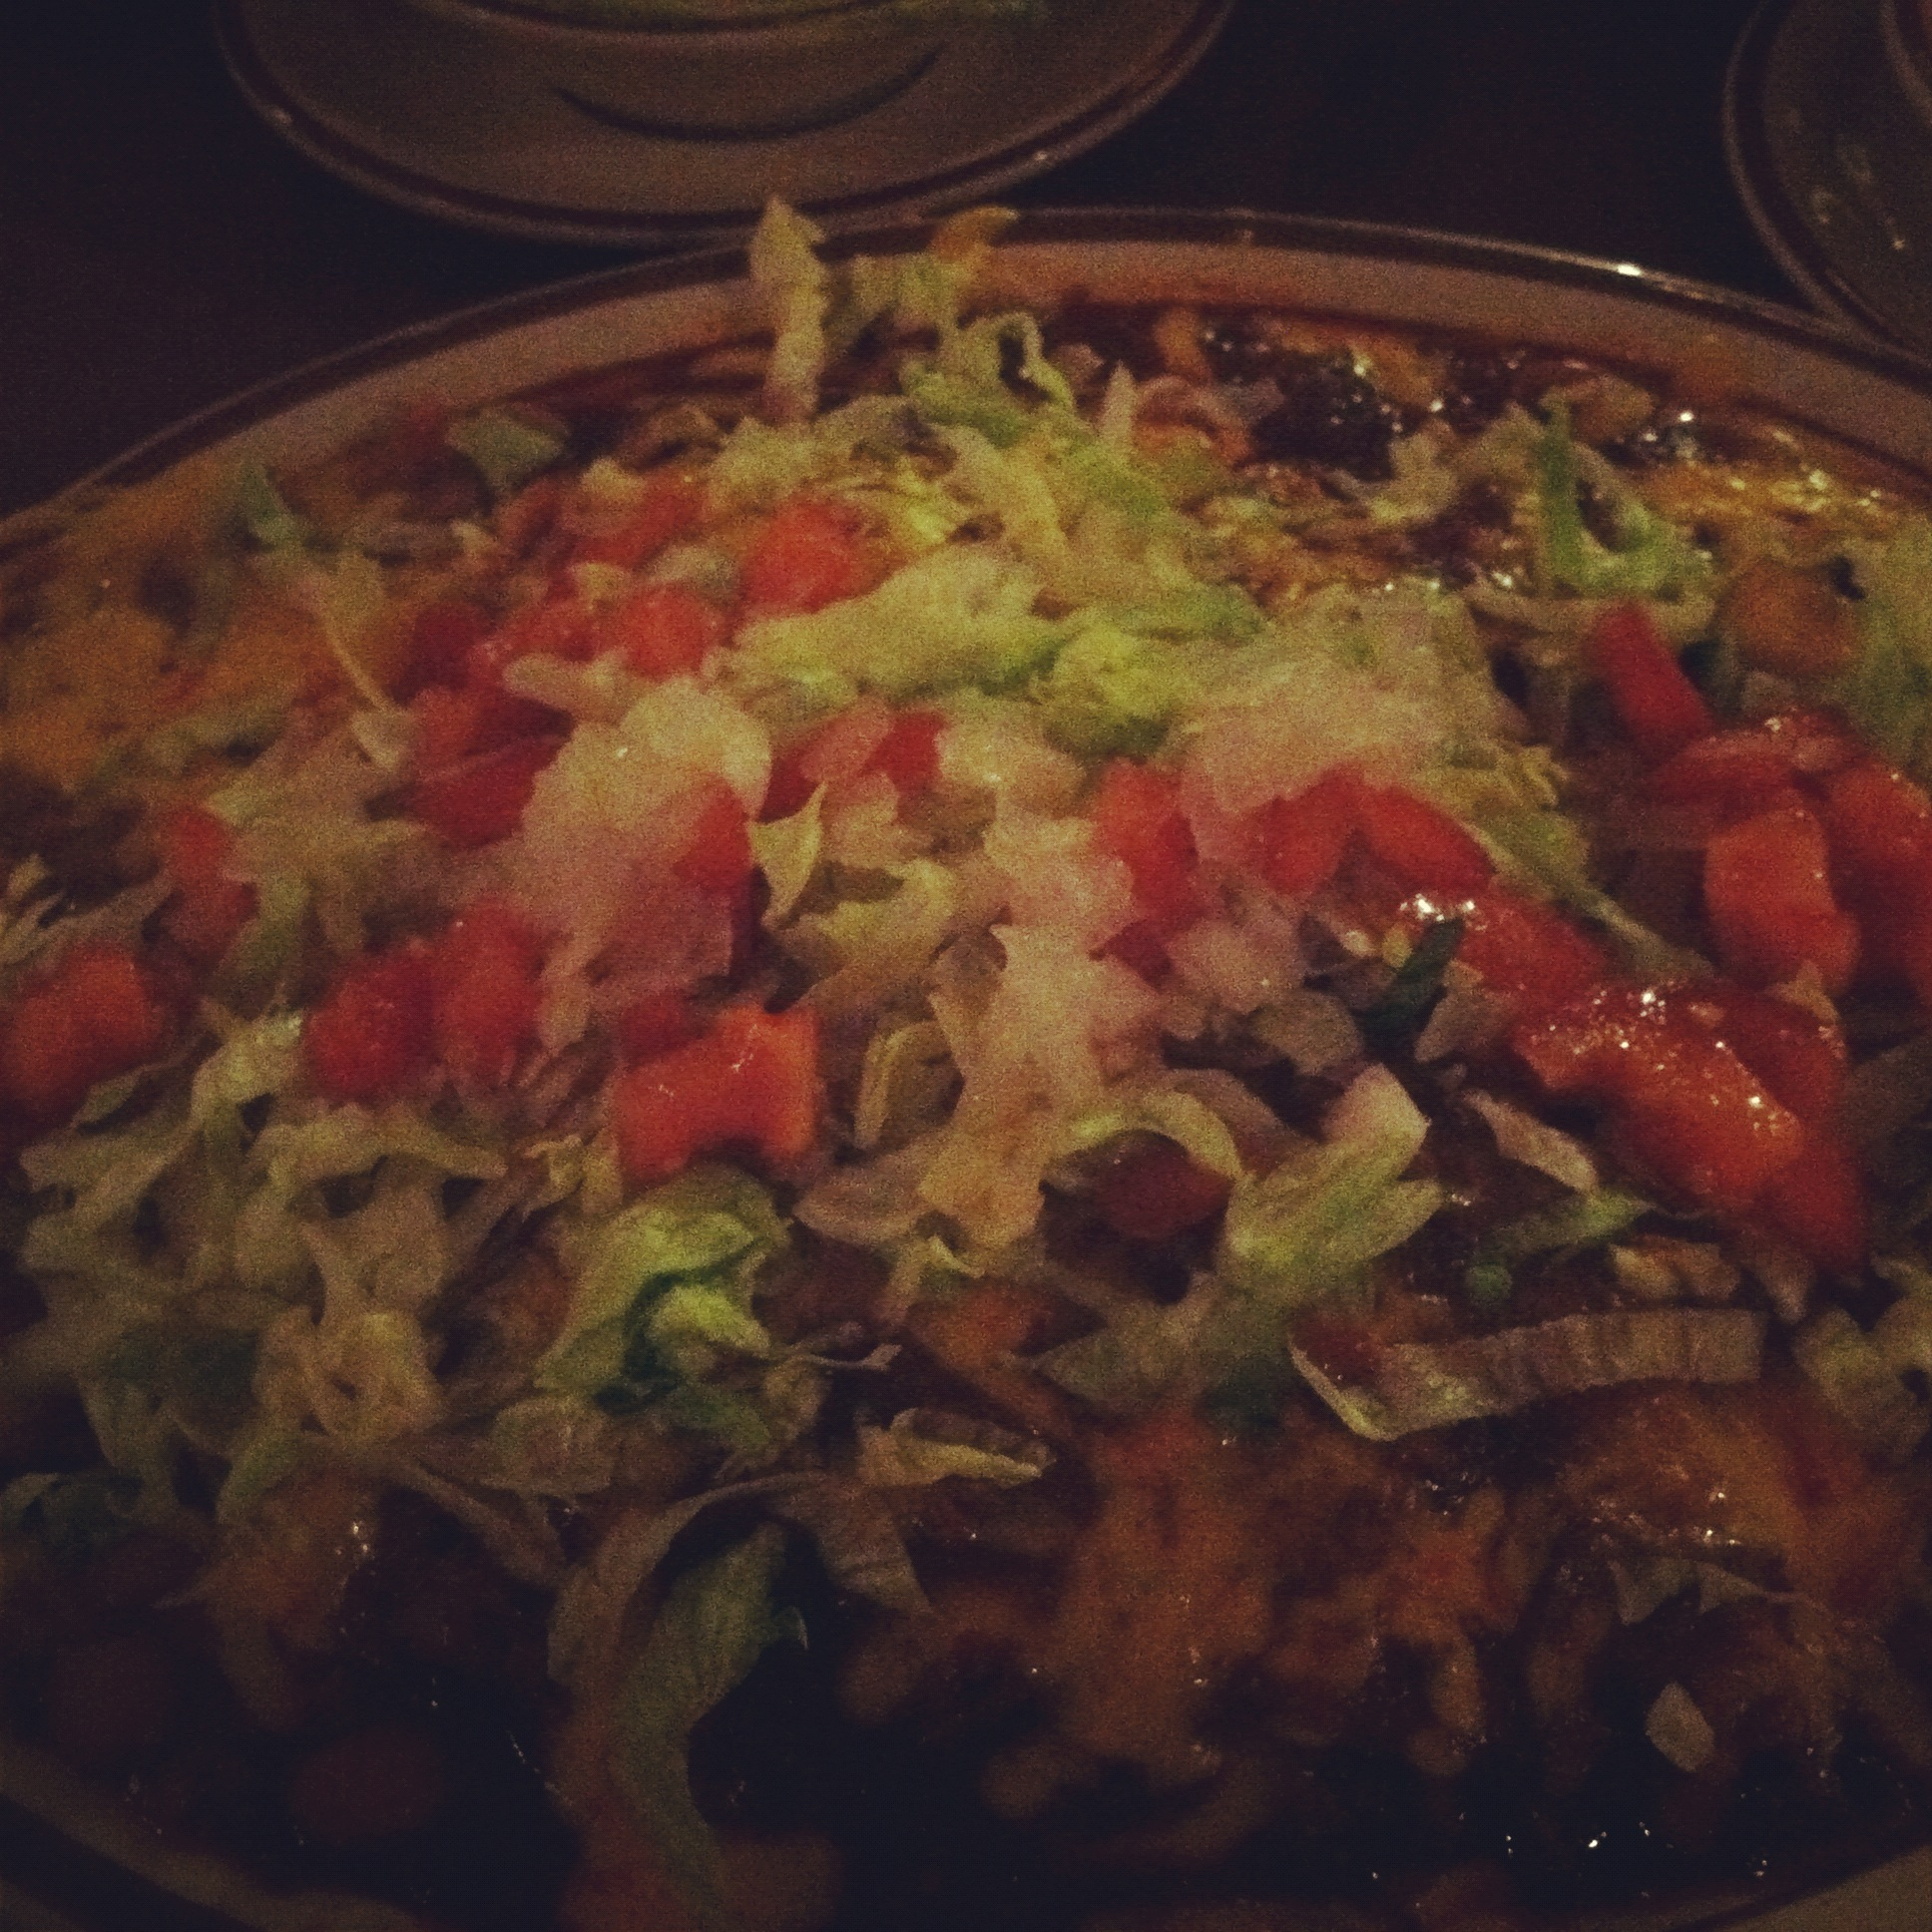 Hot, spicy Mexican food. Mmmmm.